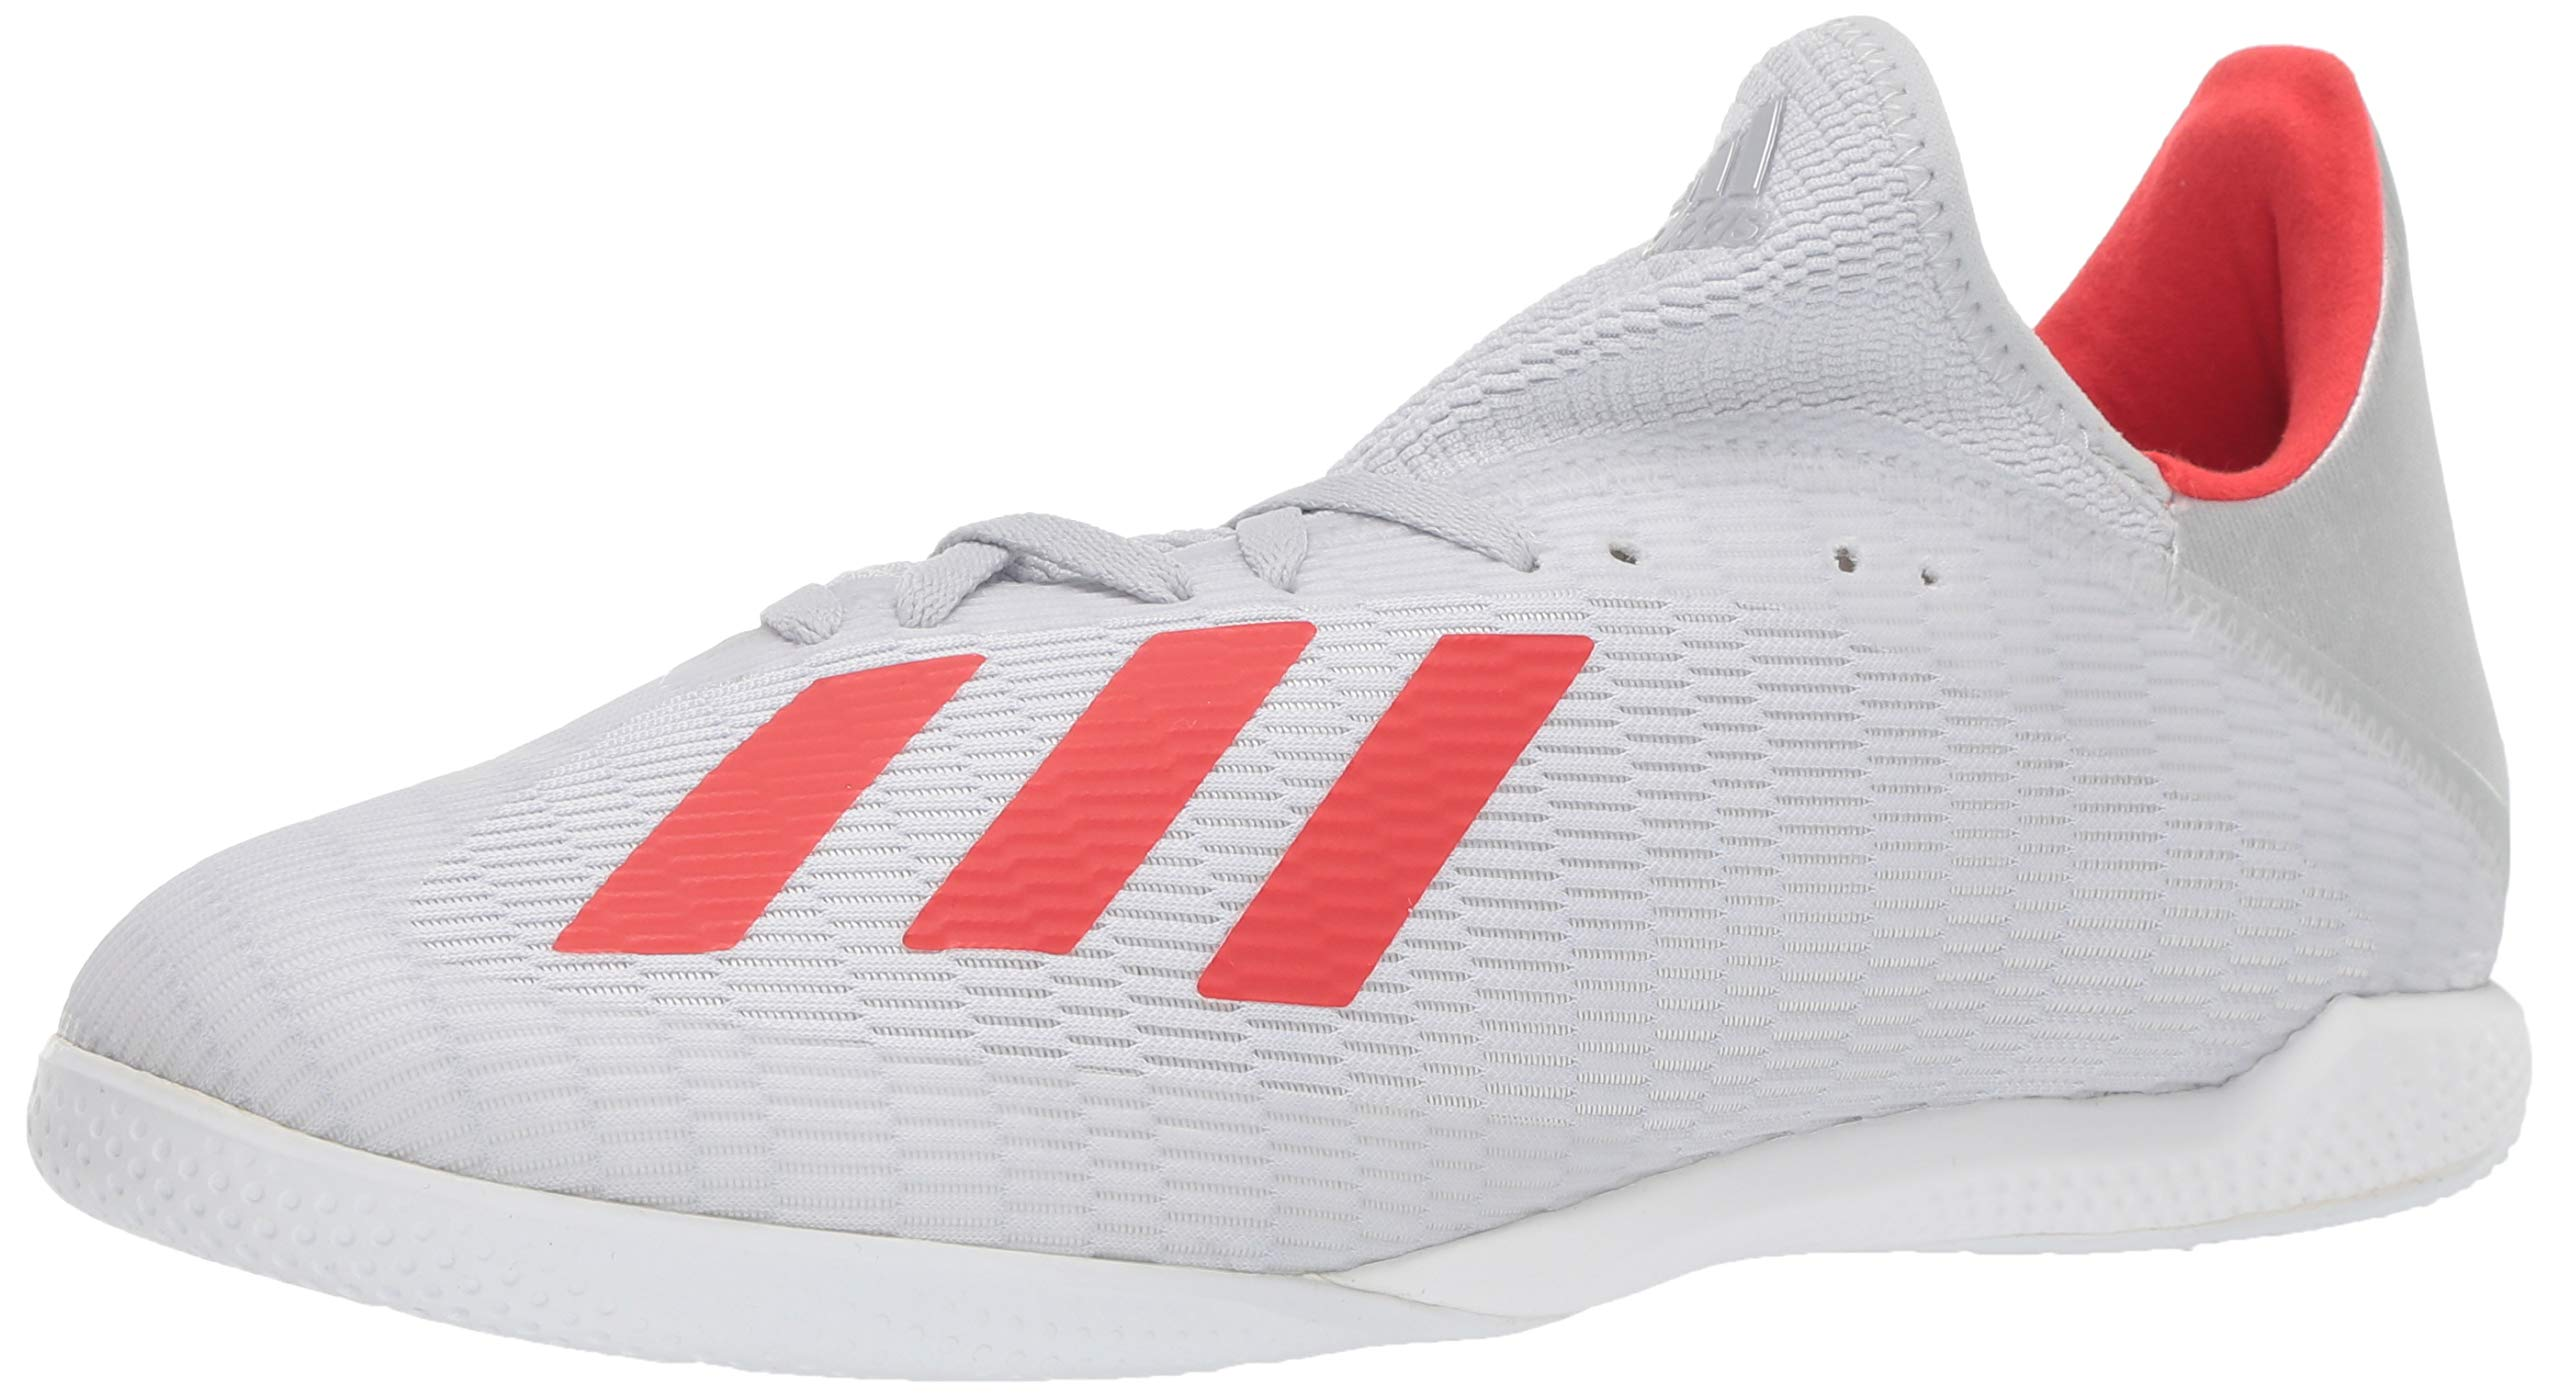 adidas Men's X 19.3 Indoor Soccer Shoe, Silver Metallic/hi-res red/White, 13.5 M US by adidas